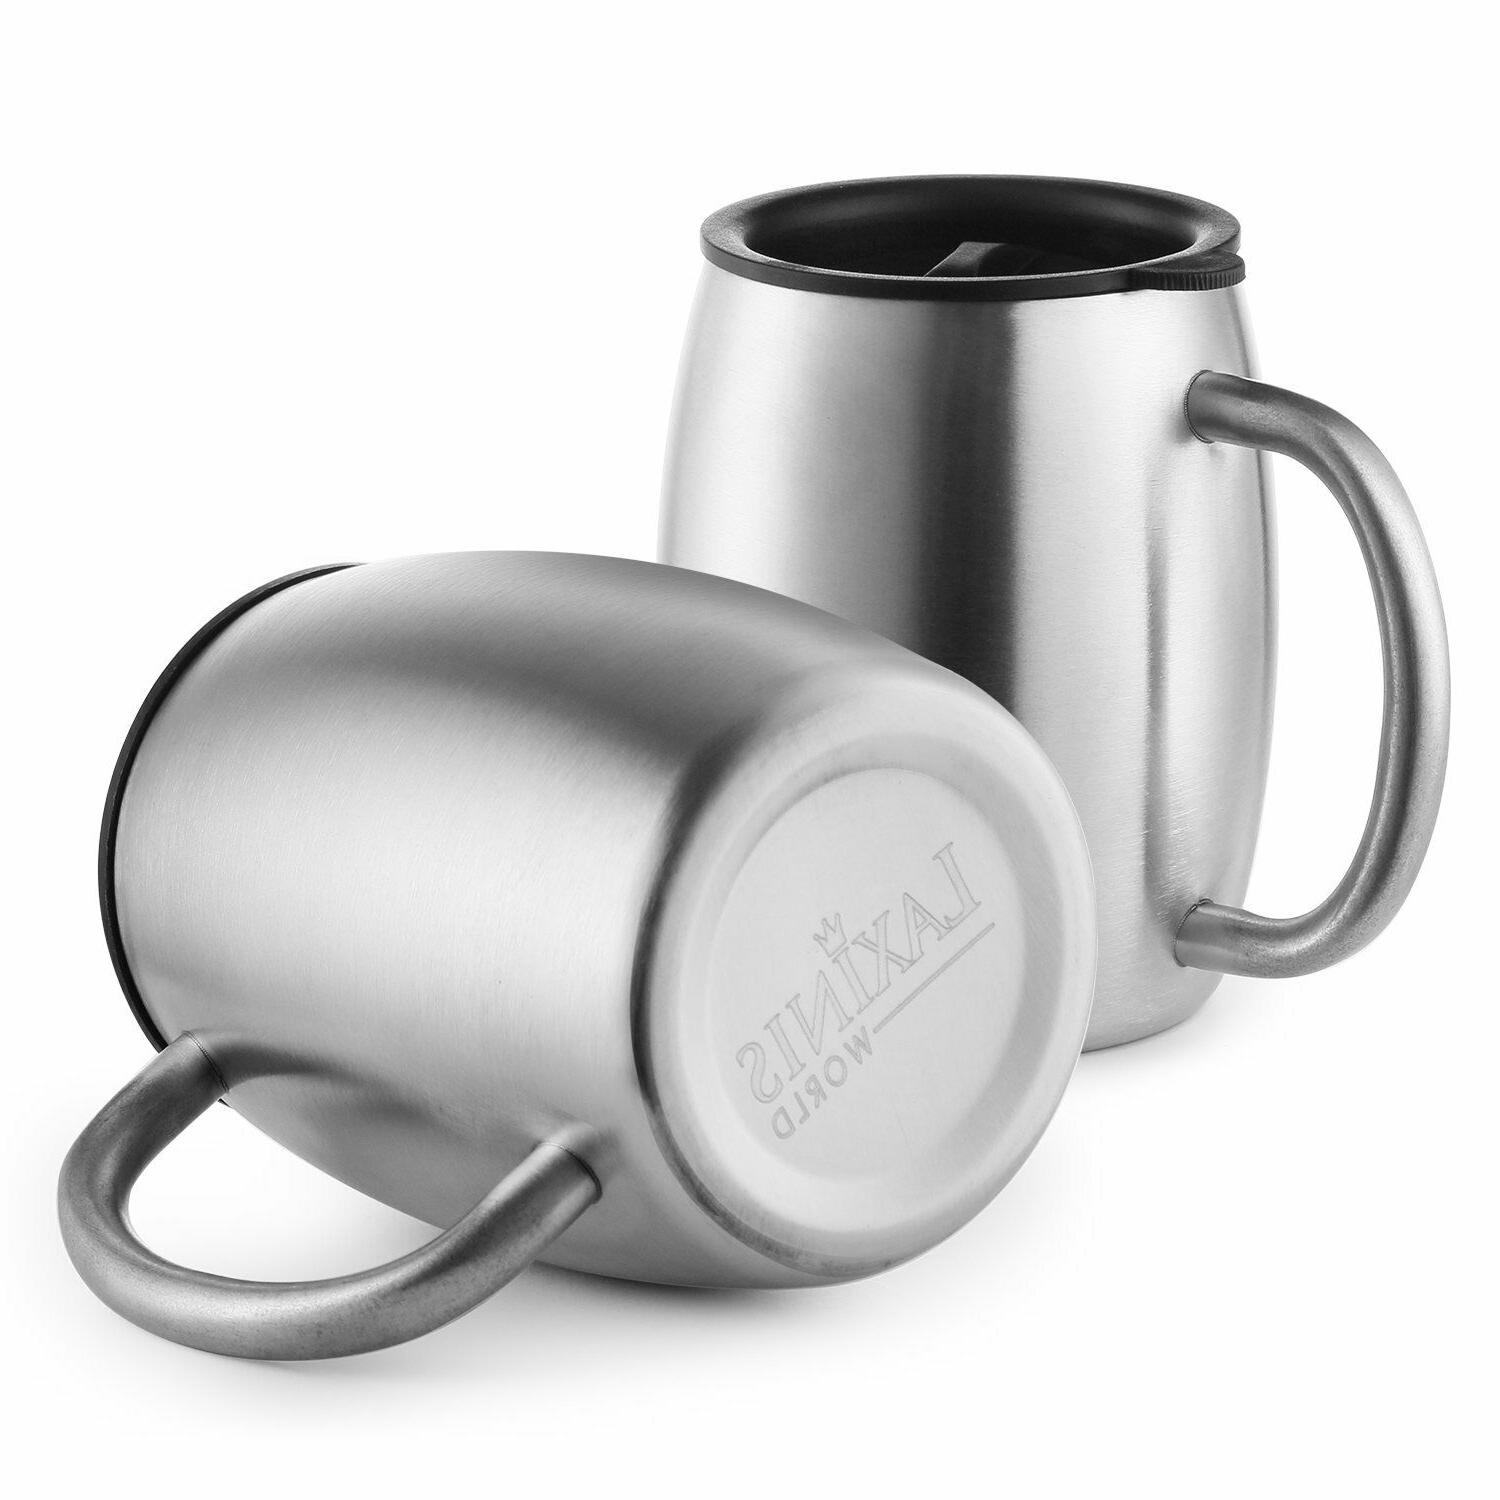 Stainless Steel with Resistant 14 Oz Double Insul